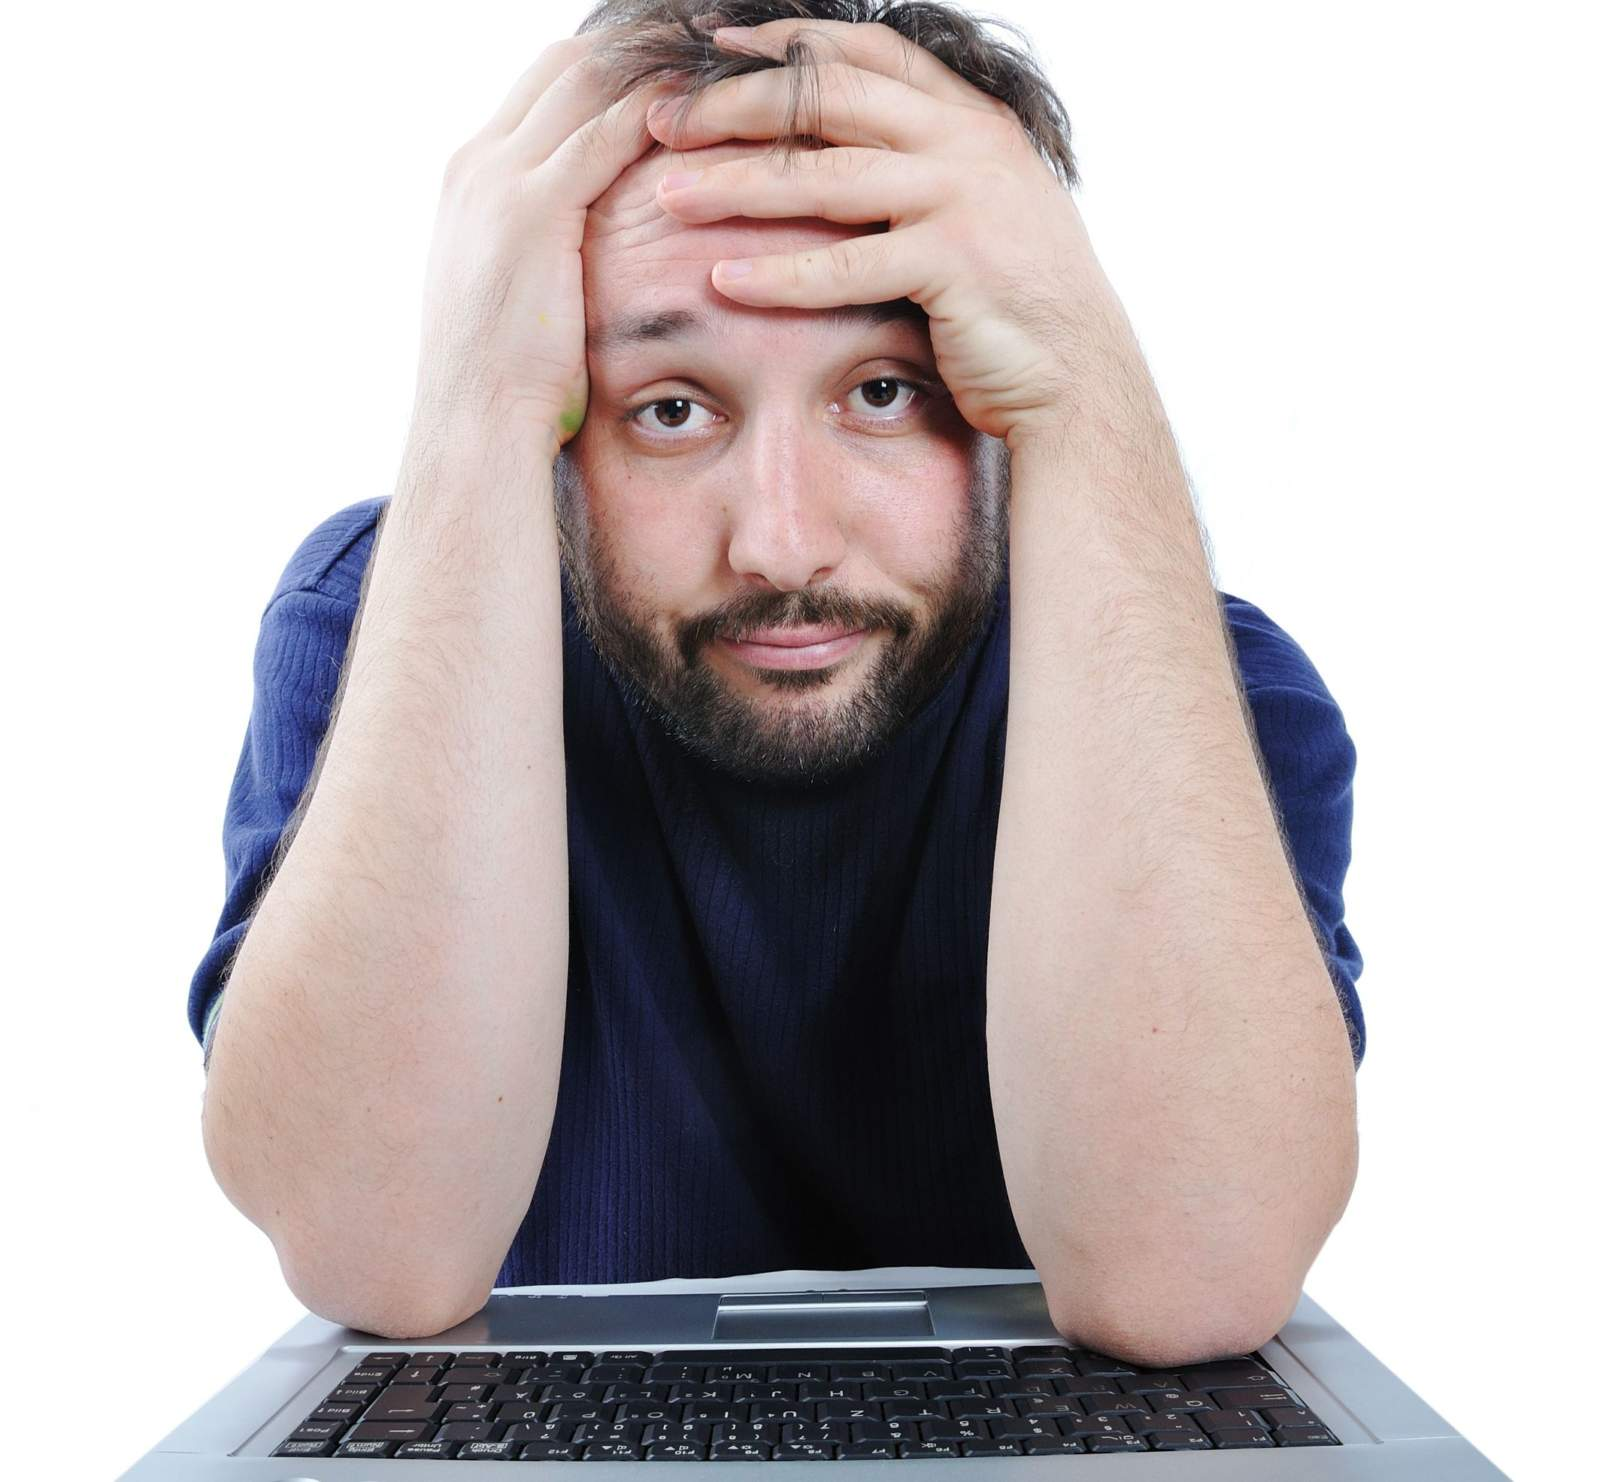 man annoyed looking at his computer screen